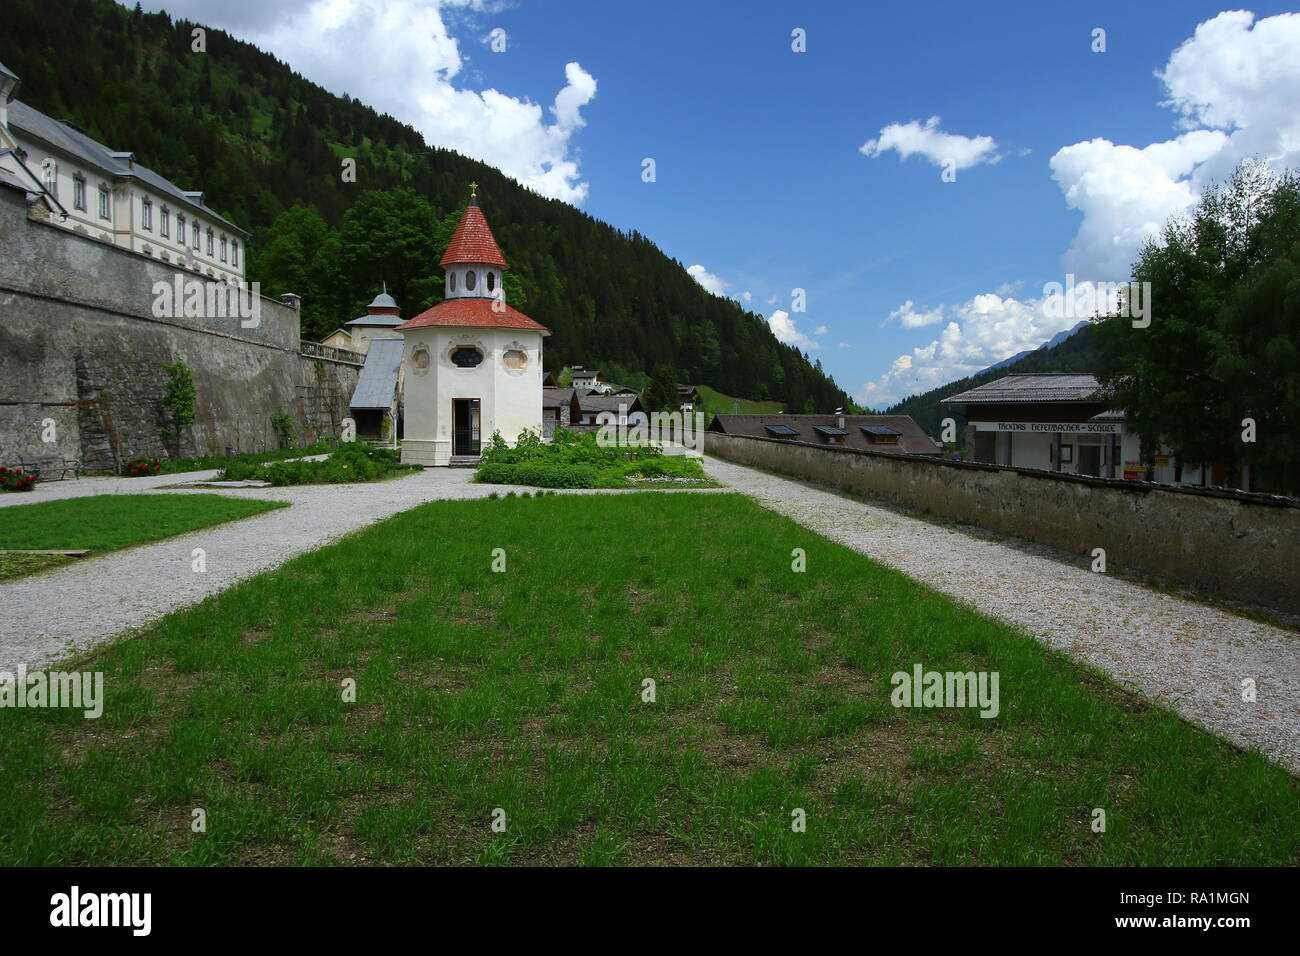 Lesachtal in Carinthia. Together with the villages of Liesing, Maria Luggau, St. Jakob, Birnbaum and St. Lorenzen. Wild Austria Europe. - Stock Image